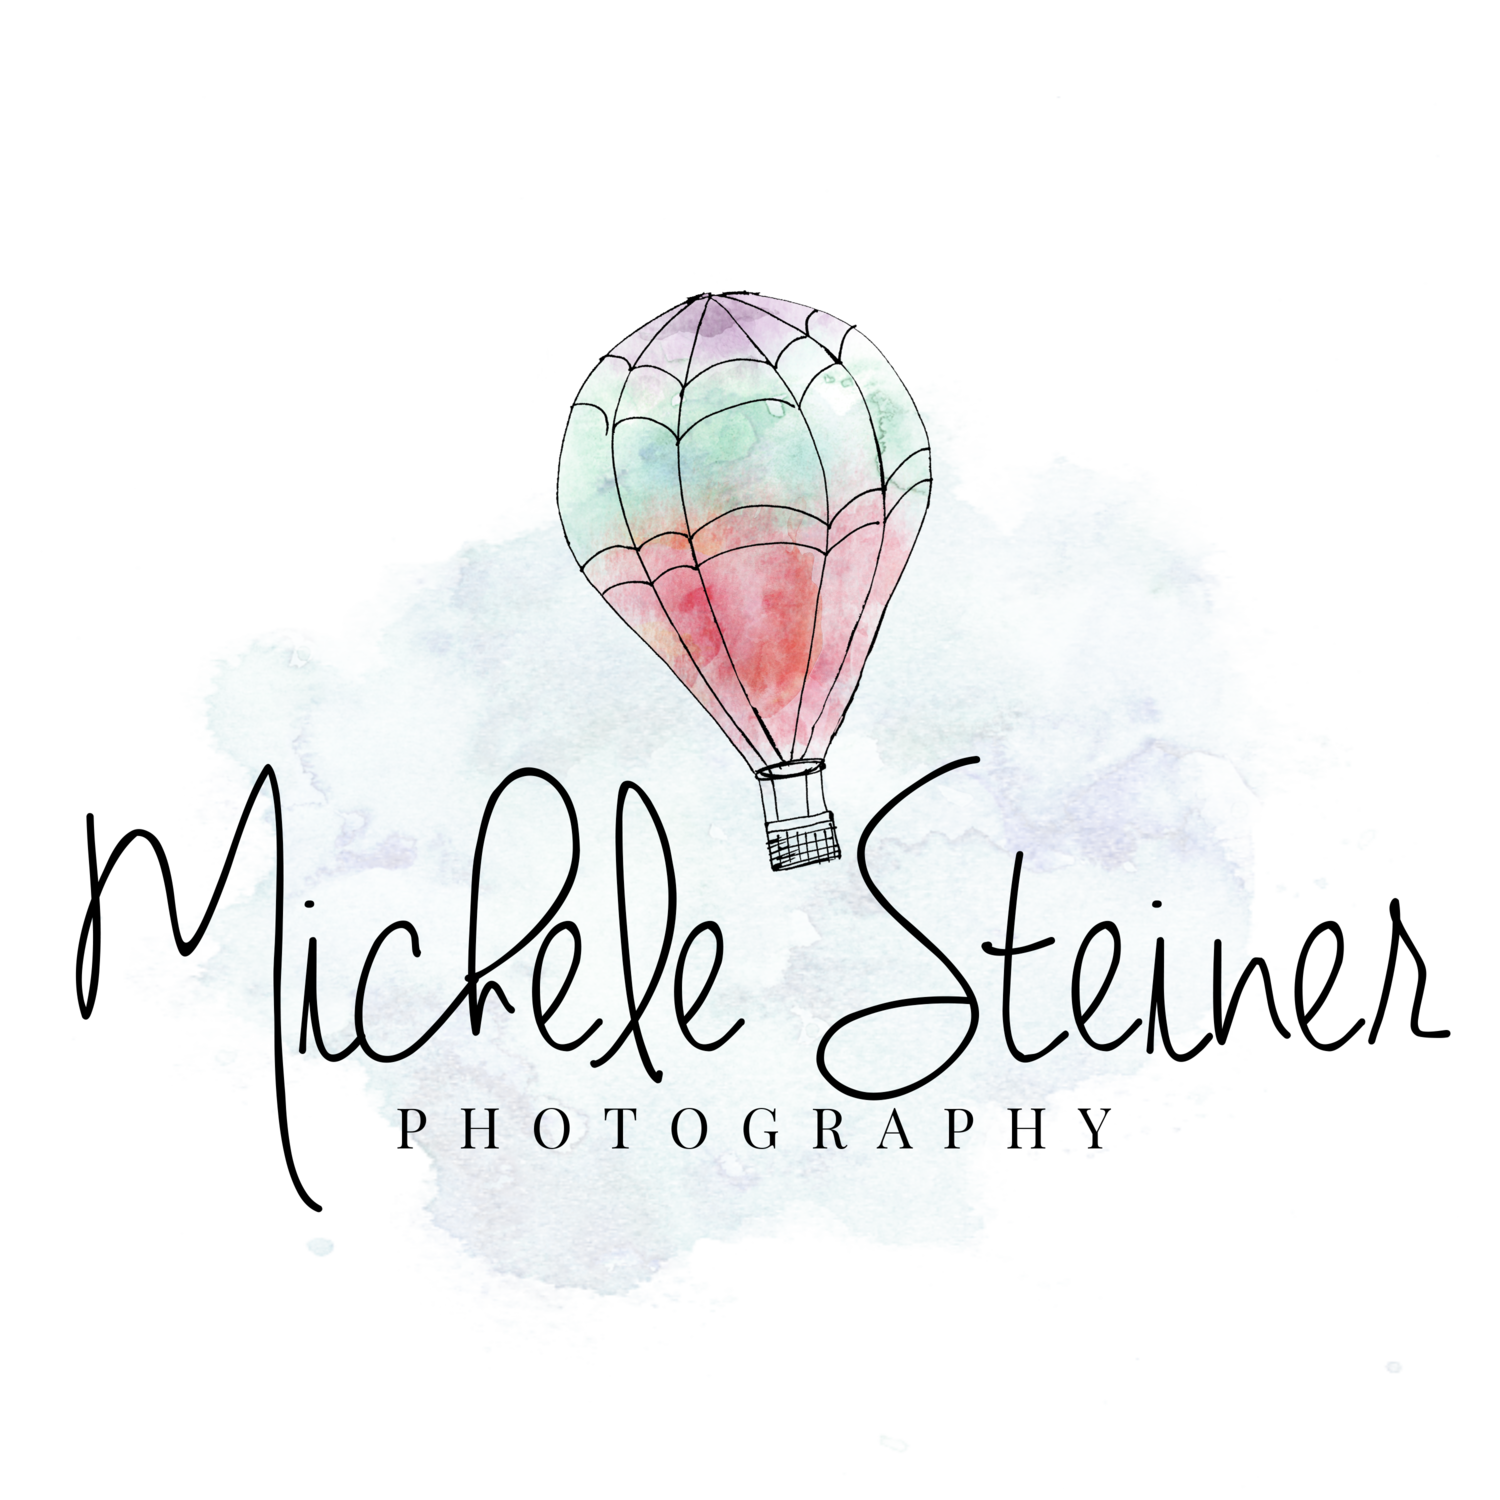 Ottawa Photographer | Michele Steiner Photography